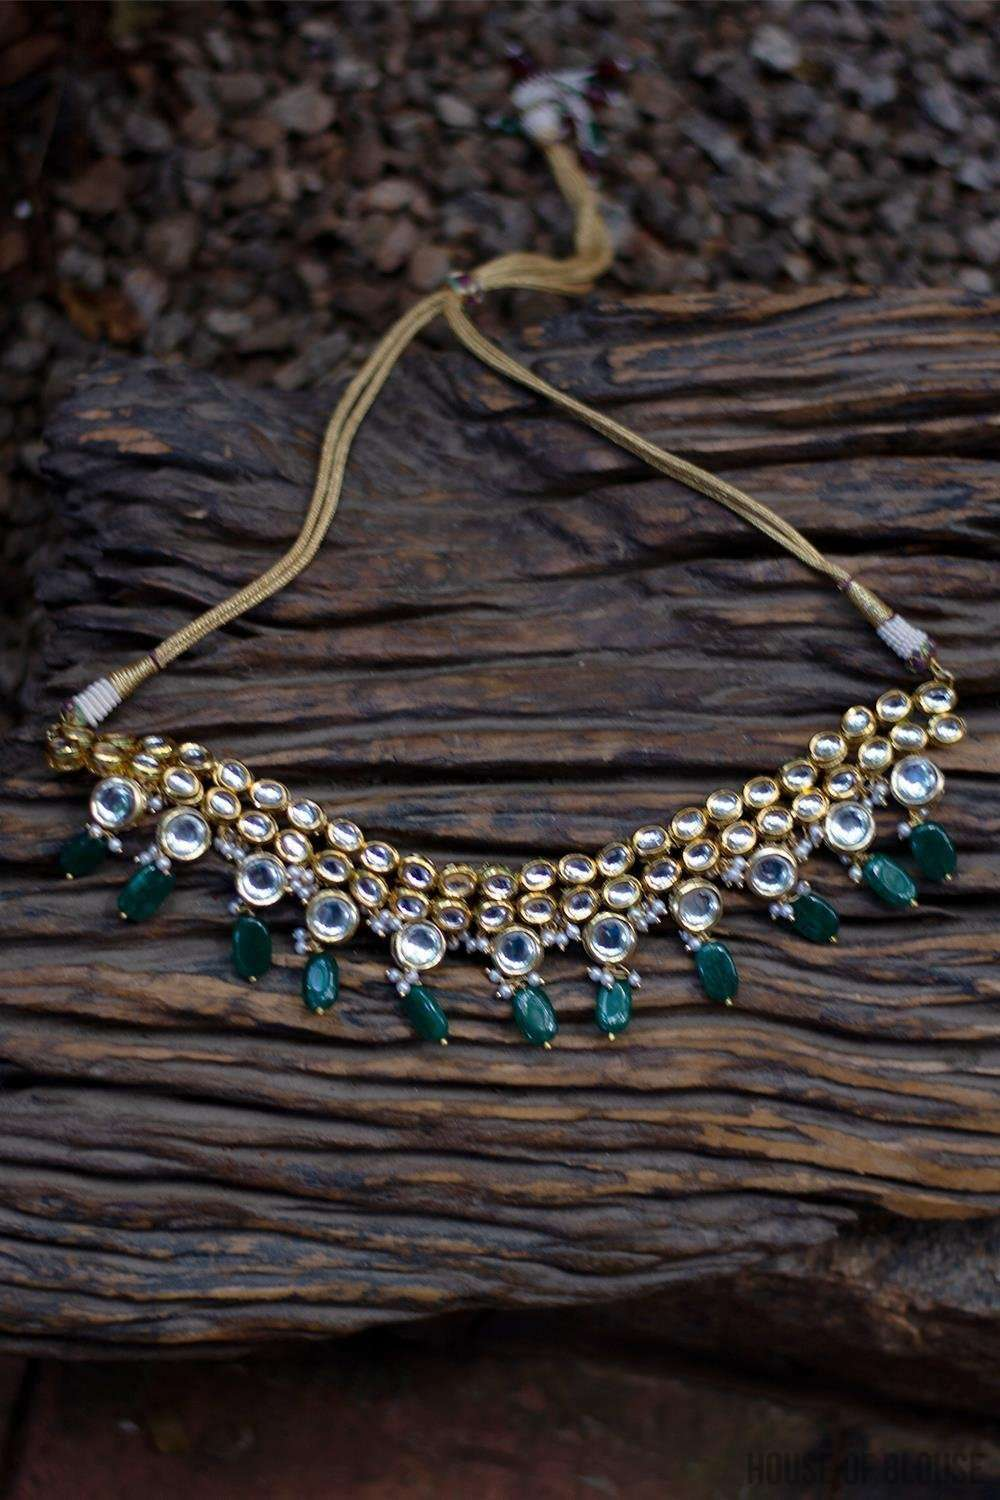 Kundan and Emerald Green Stones Choker Necklace - House of Blouse